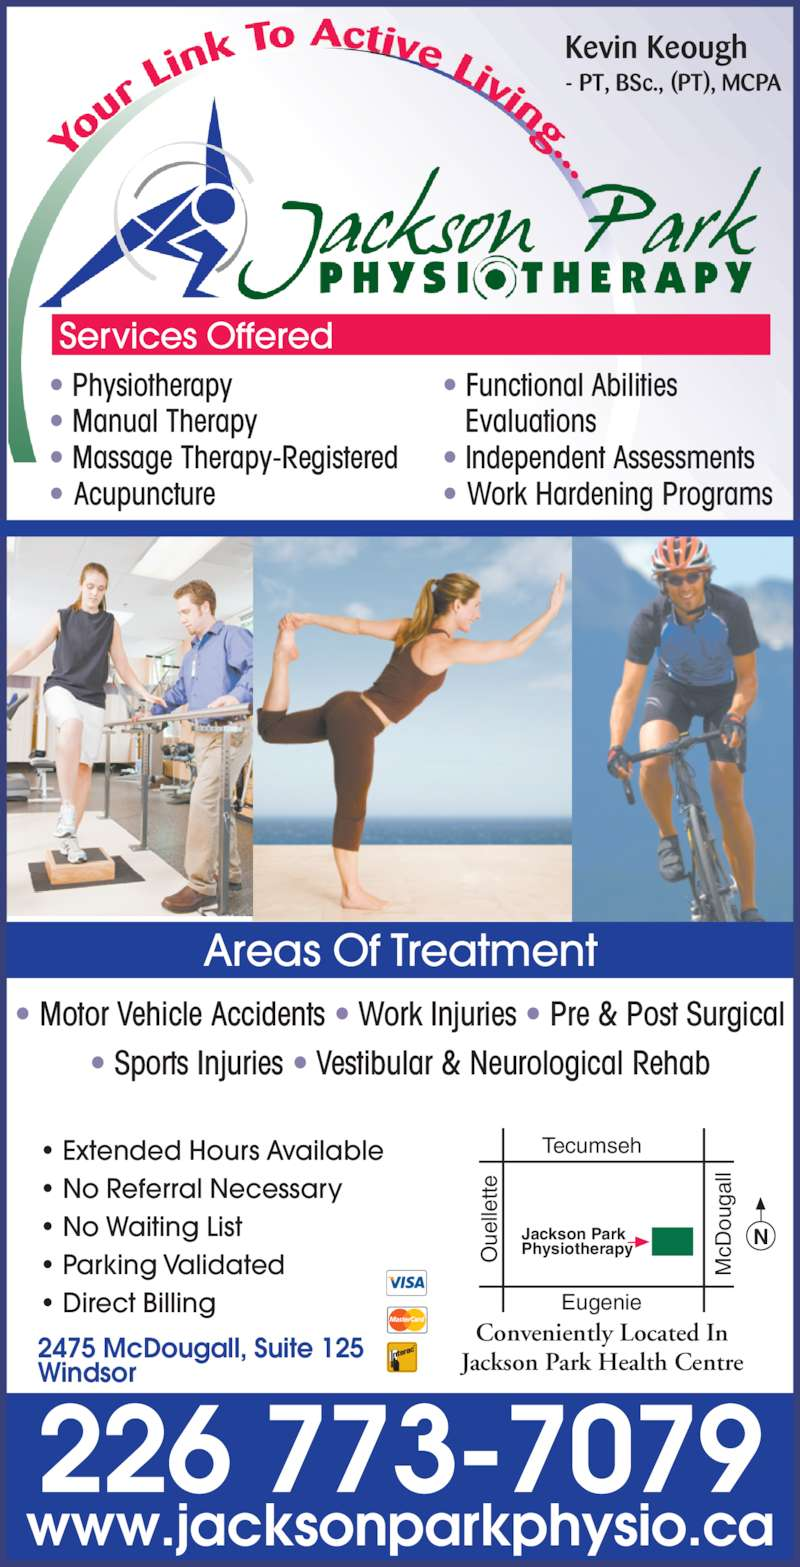 Jackson Park Physiotherapy (519-250-5775) - Display Ad - Jackson Park Health Centre cD ou ga ll ue lle 226 773-7079 2475 McDougall, Suite 125 Windsor www.jacksonparkphysio.ca Services Offered tte Tecumseh Eugenie NJackson ParkPhysiotherapy ? Extended Hours Available ? No Referral Necessary ? No Waiting List ? Parking Validated ? Direct Billing ? Motor Vehicle Accidents ? Work Injuries ? Pre & Post Surgical ? Sports Injuries ? Vestibular & Neurological Rehab Areas Of Treatment Kevin Keough - PT, BSc., (PT), MCPA ? Physiotherapy ? Manual Therapy ? Massage Therapy-Registered ? Acupuncture ? Functional Abilities     Evaluations ? Independent Assessments ? Work Hardening Programs Conveniently Located In